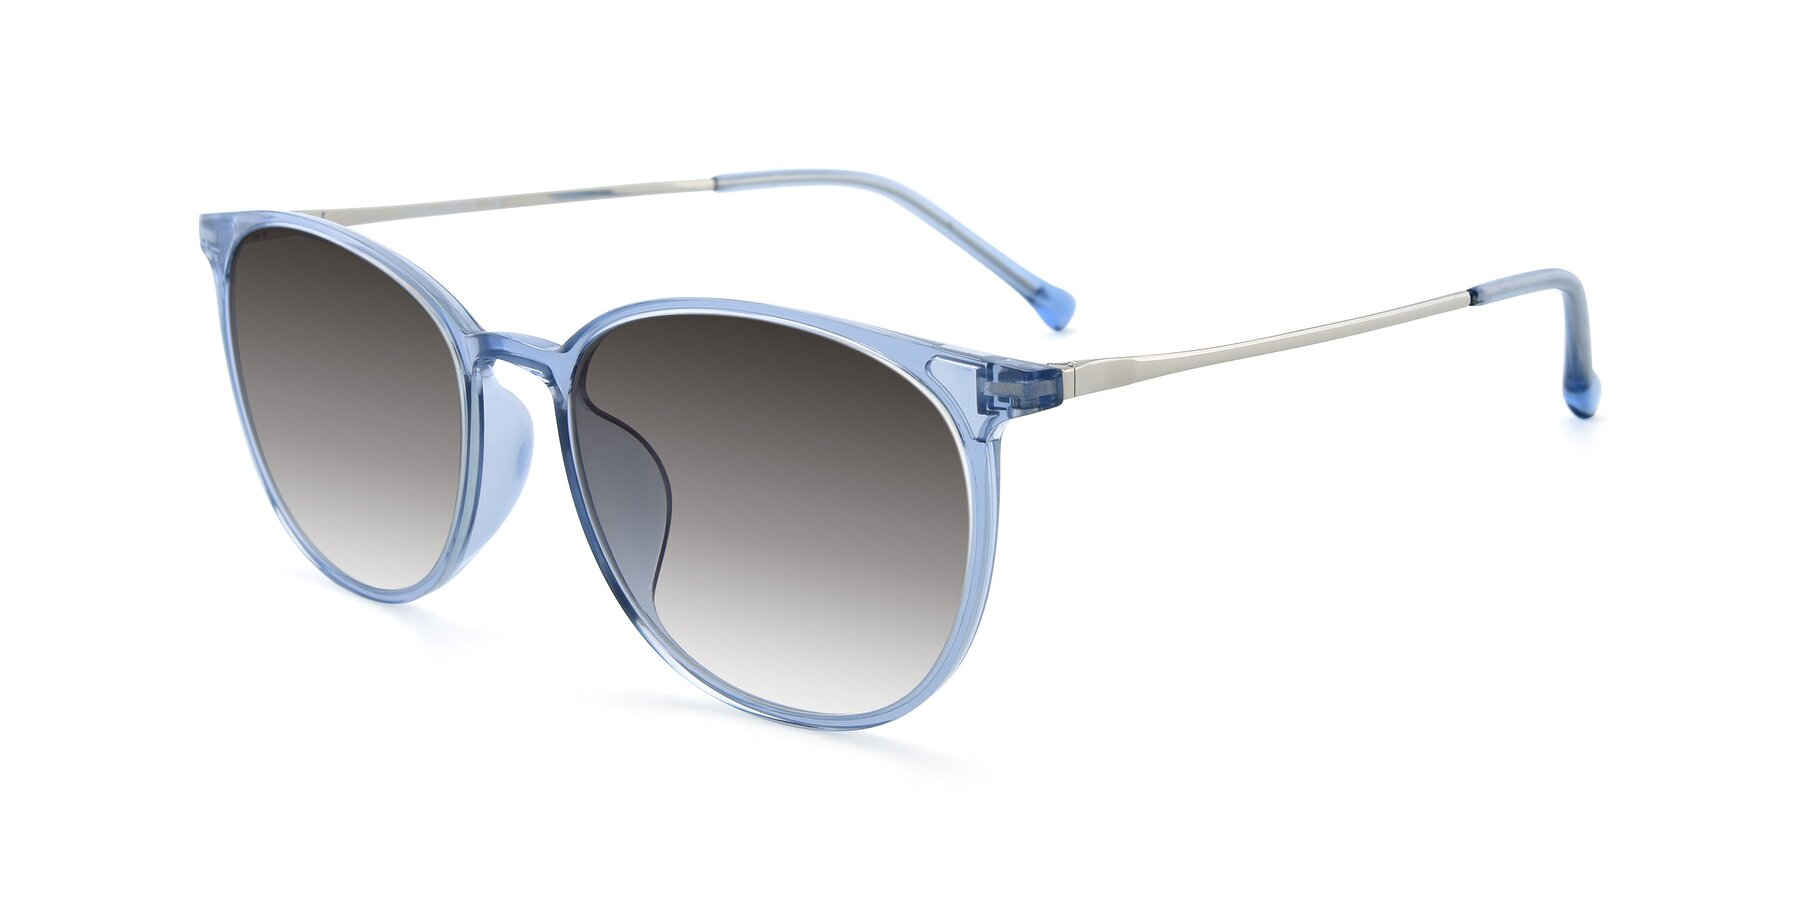 Angle of XC-6006 in Blue Amber-Silver with Gray Gradient Lenses